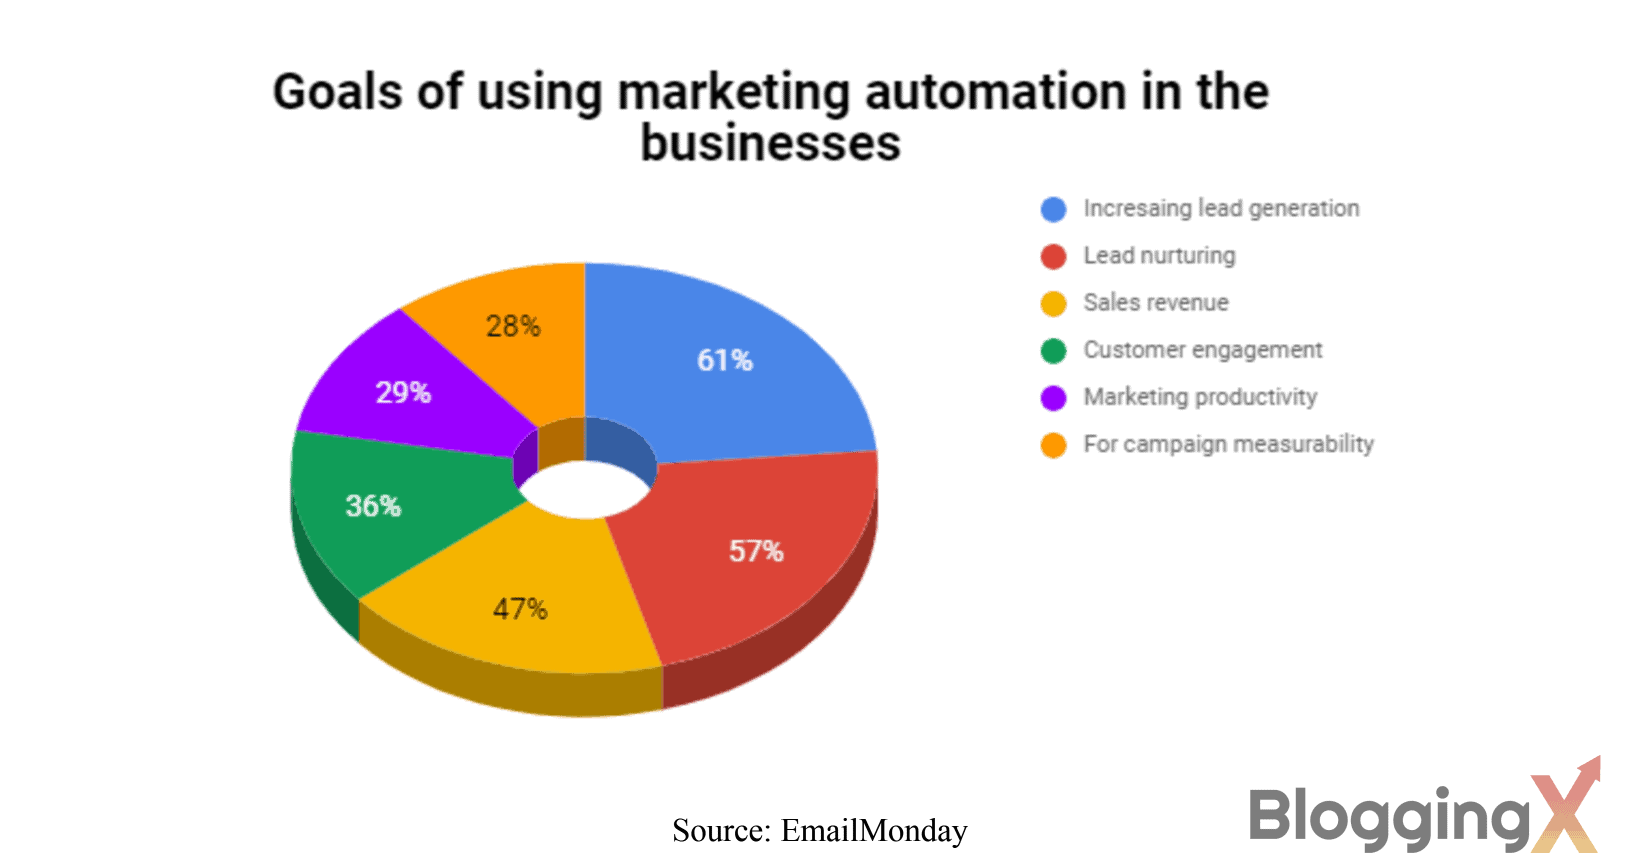 Goals of using marketing automation in businesses